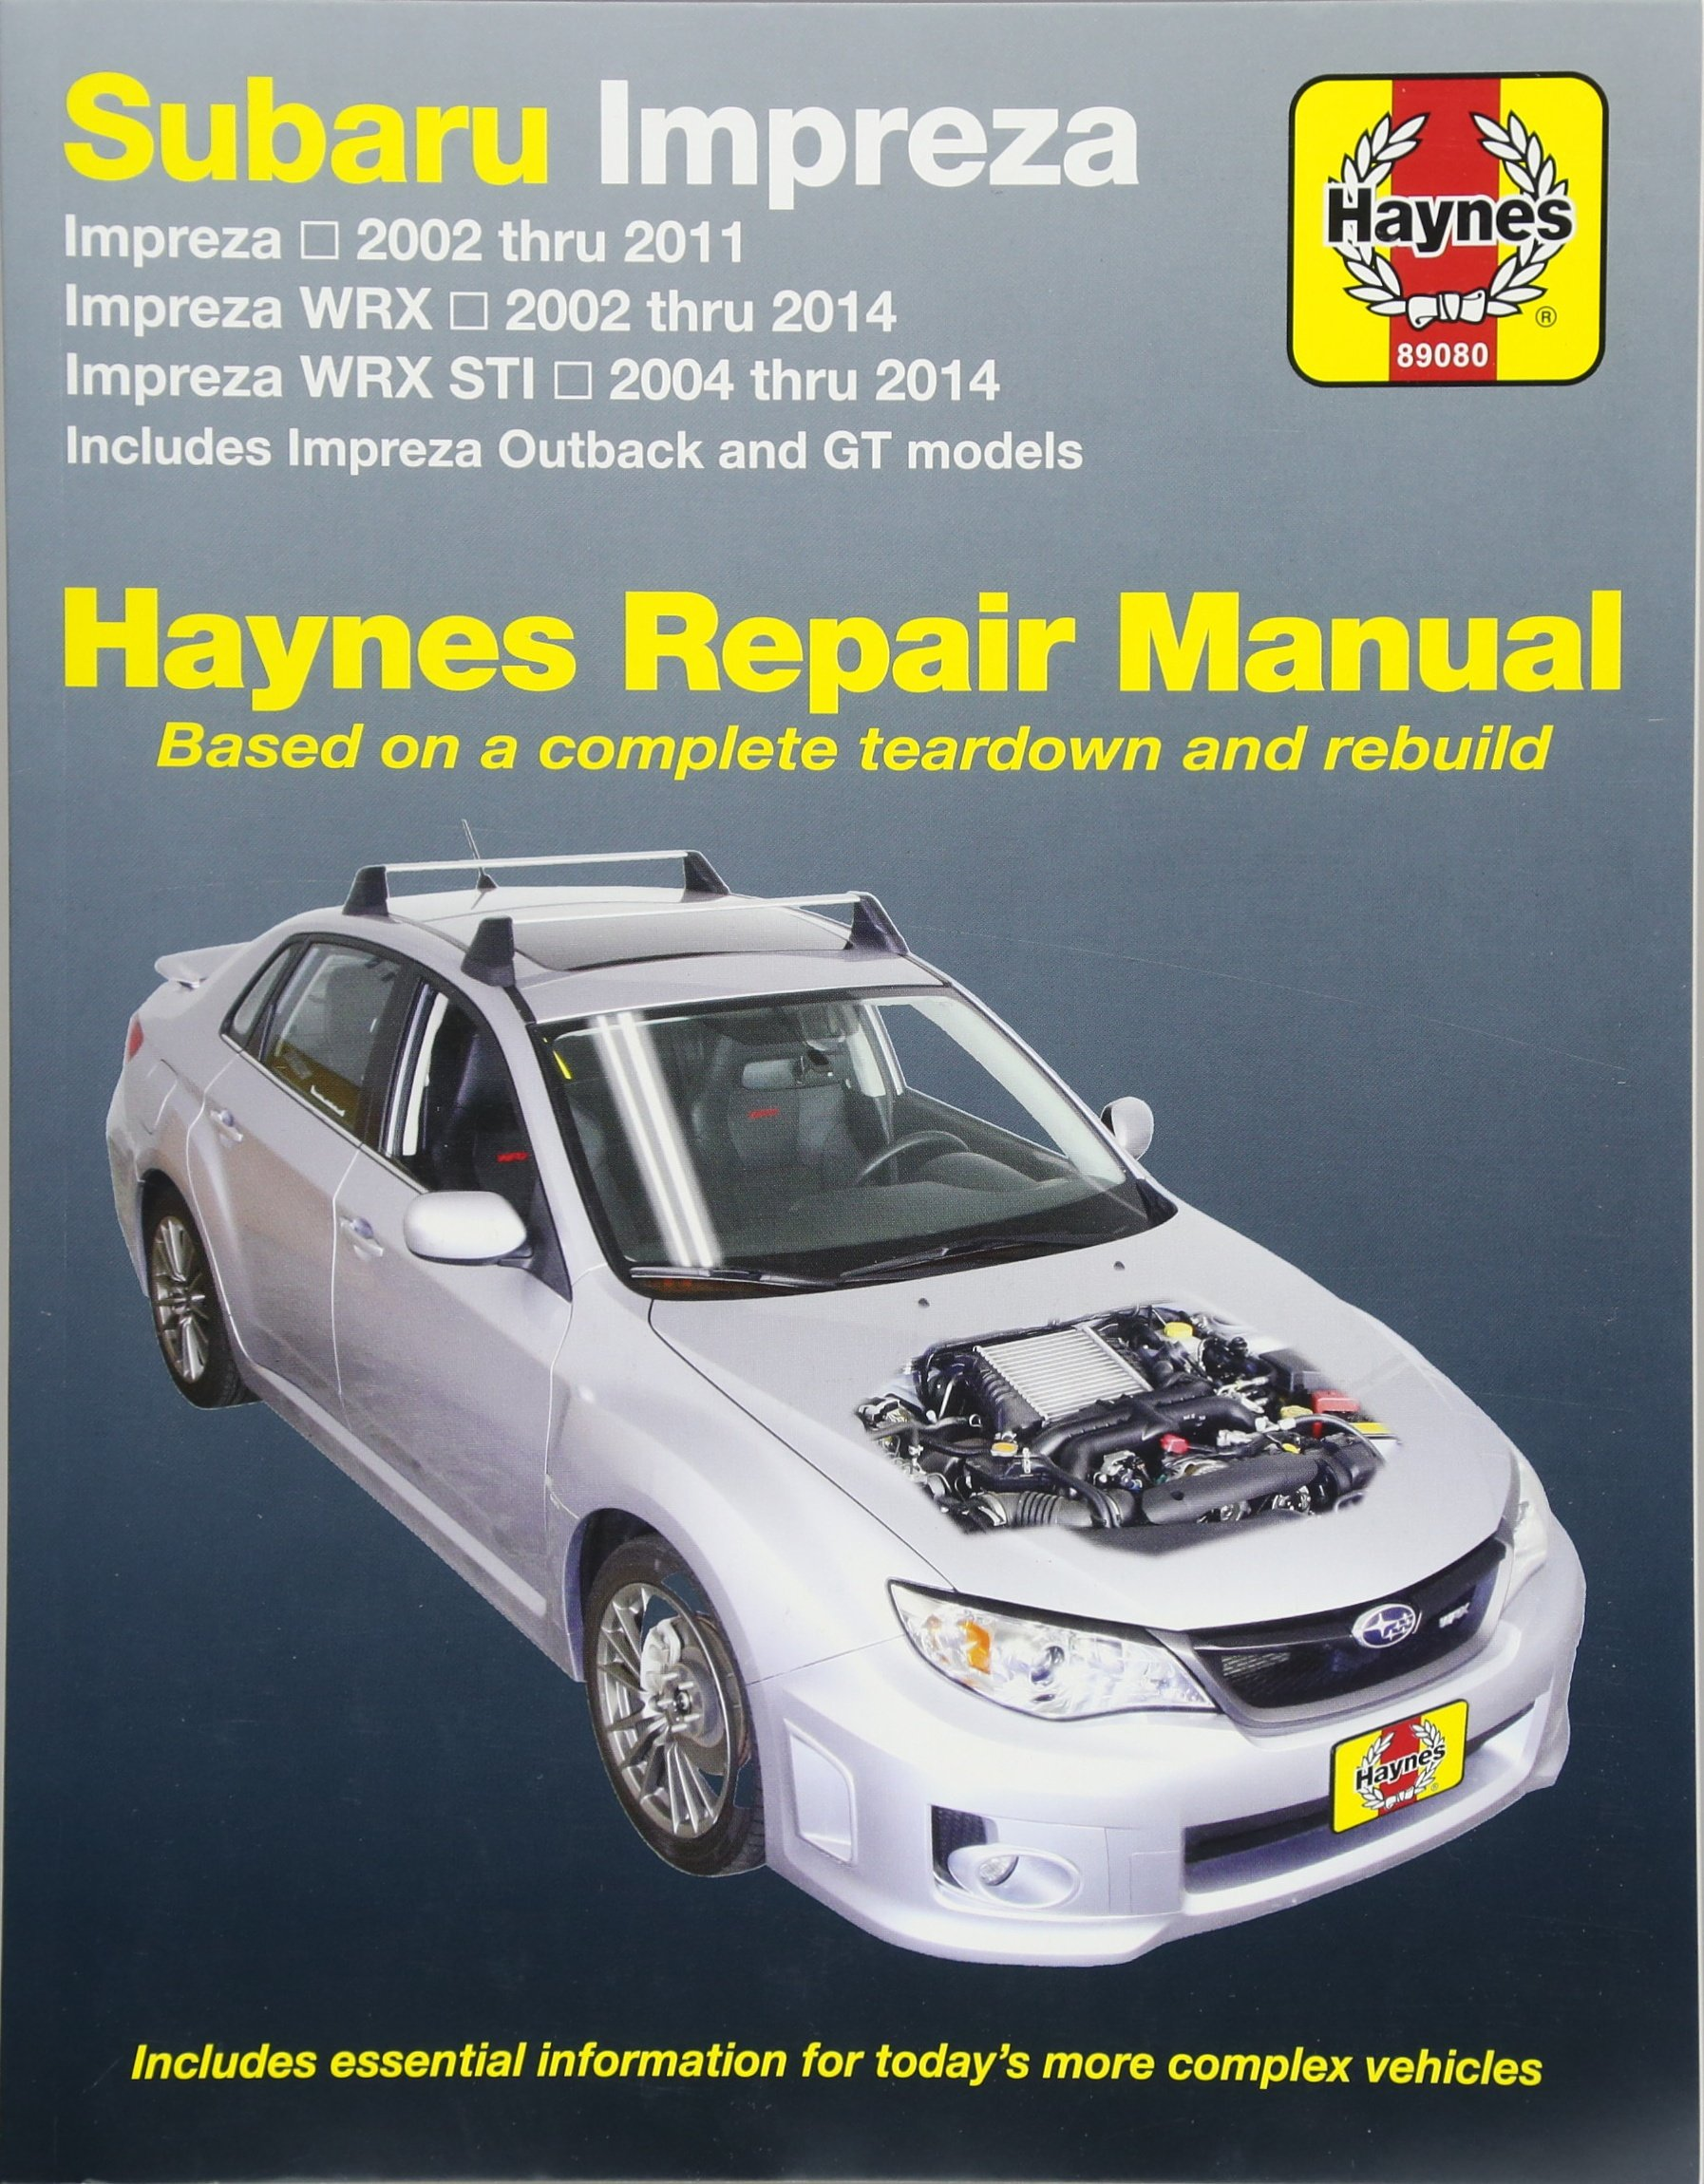 Subaru Impreza 2002 thru 2011, Impreza WRX 2002 thru 2014, Impreza WRX STI  2004 thru 2014: Includes Impreza Outback and GT Models (Haynes Repair Manual):  ...